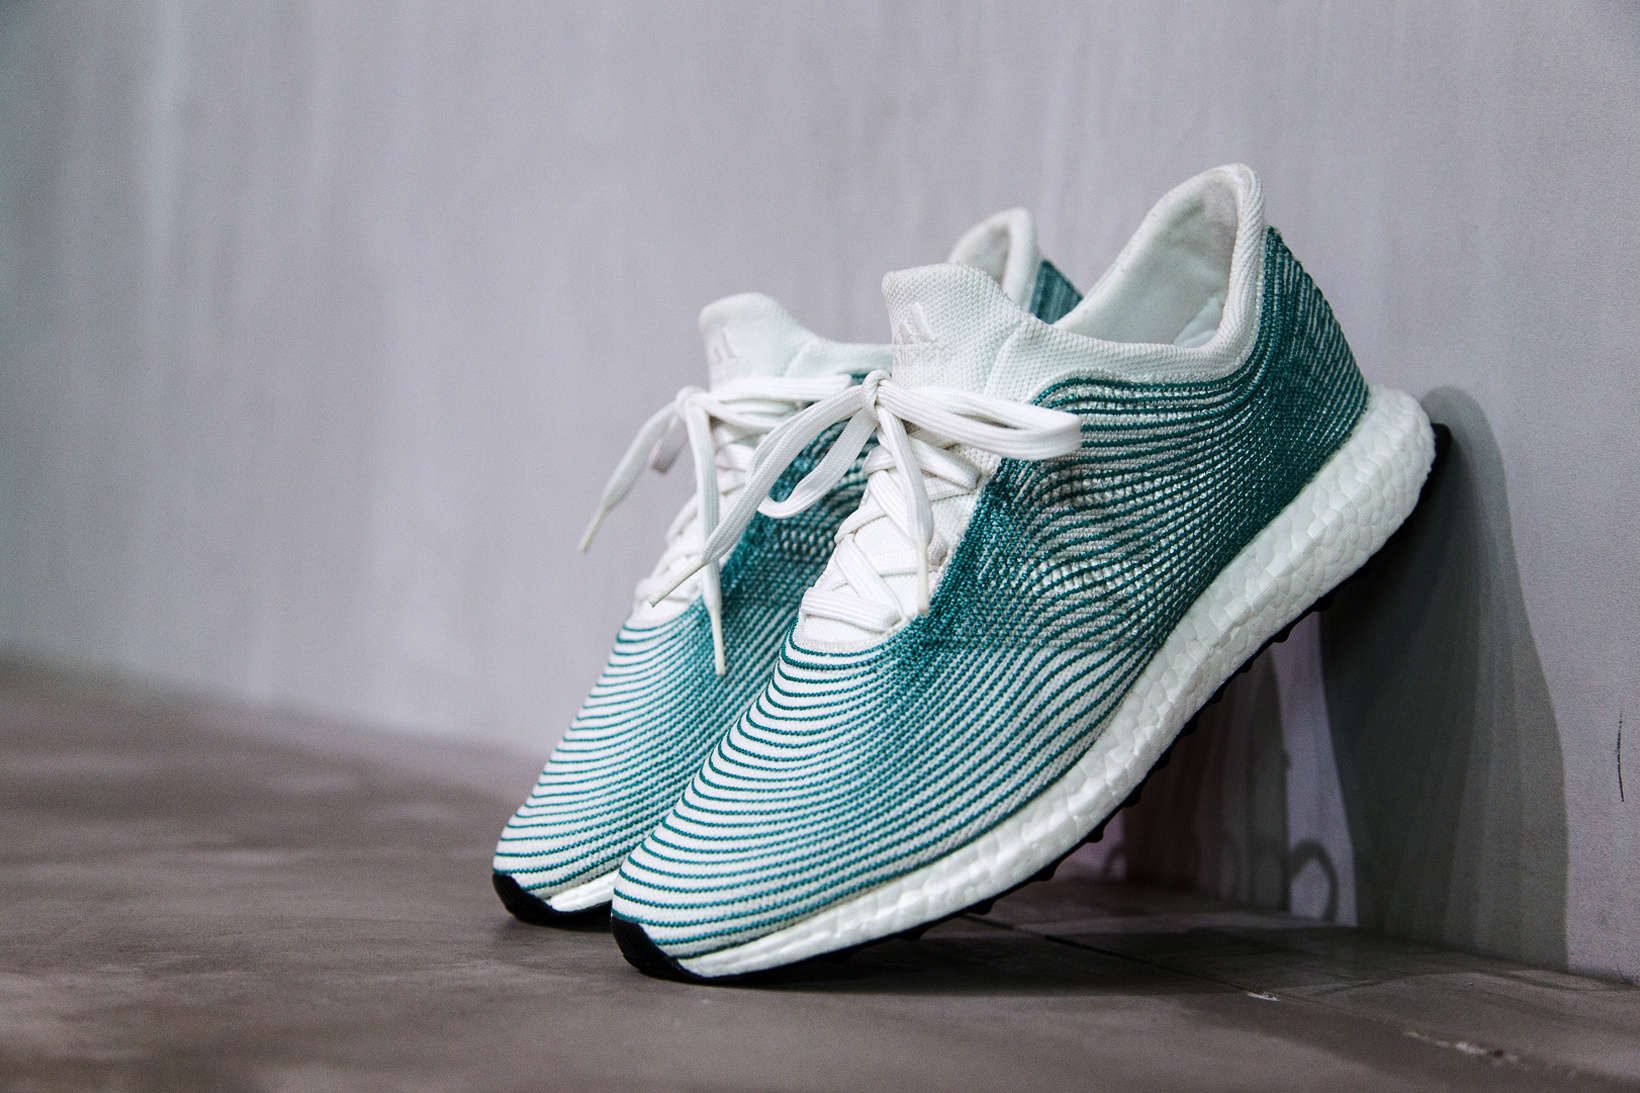 Parley collaborates with different creators and brands to bring to life a series of products that raise awareness of the need to protect our oceans - such as the now famous shoes that use old fishing nets for their knit upper